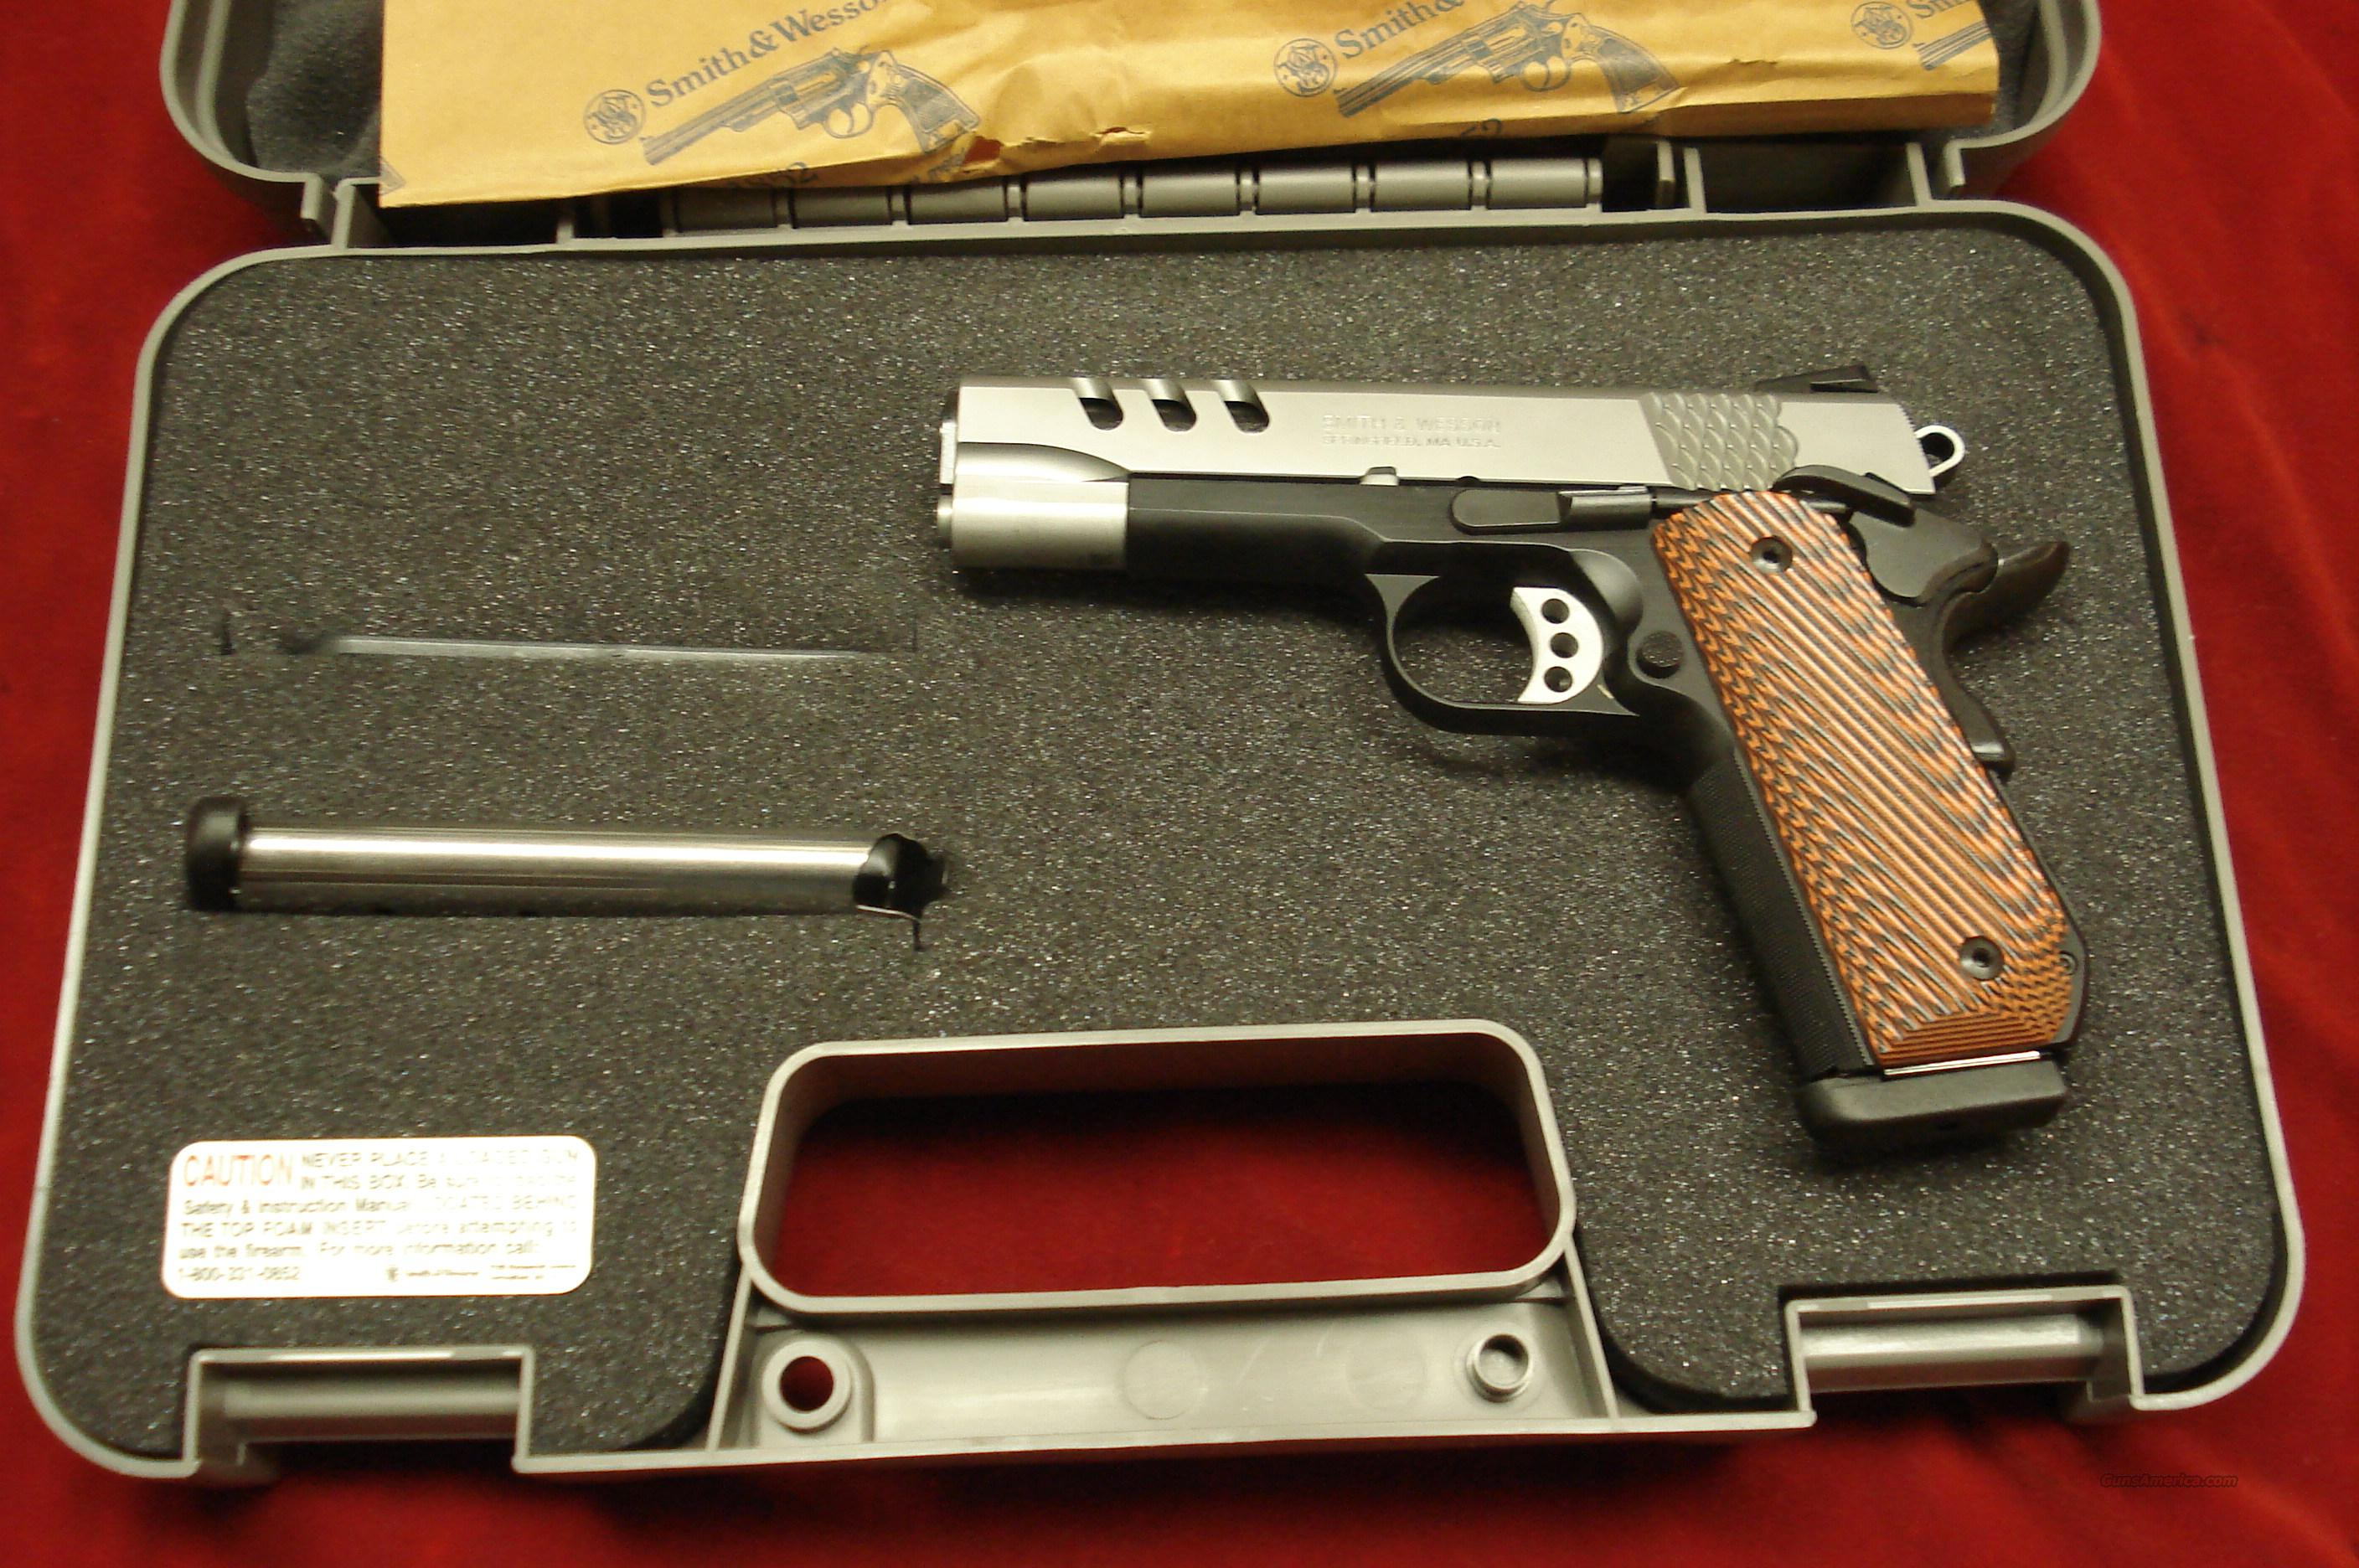 SMITH AND WESSON PERFORMANCE CENTER SW1911PC ROUND BUTT FRAME STAINLESS/SCANDIUM 45ACP  NEW  Guns > Pistols > Smith & Wesson Pistols - Autos > Steel Frame